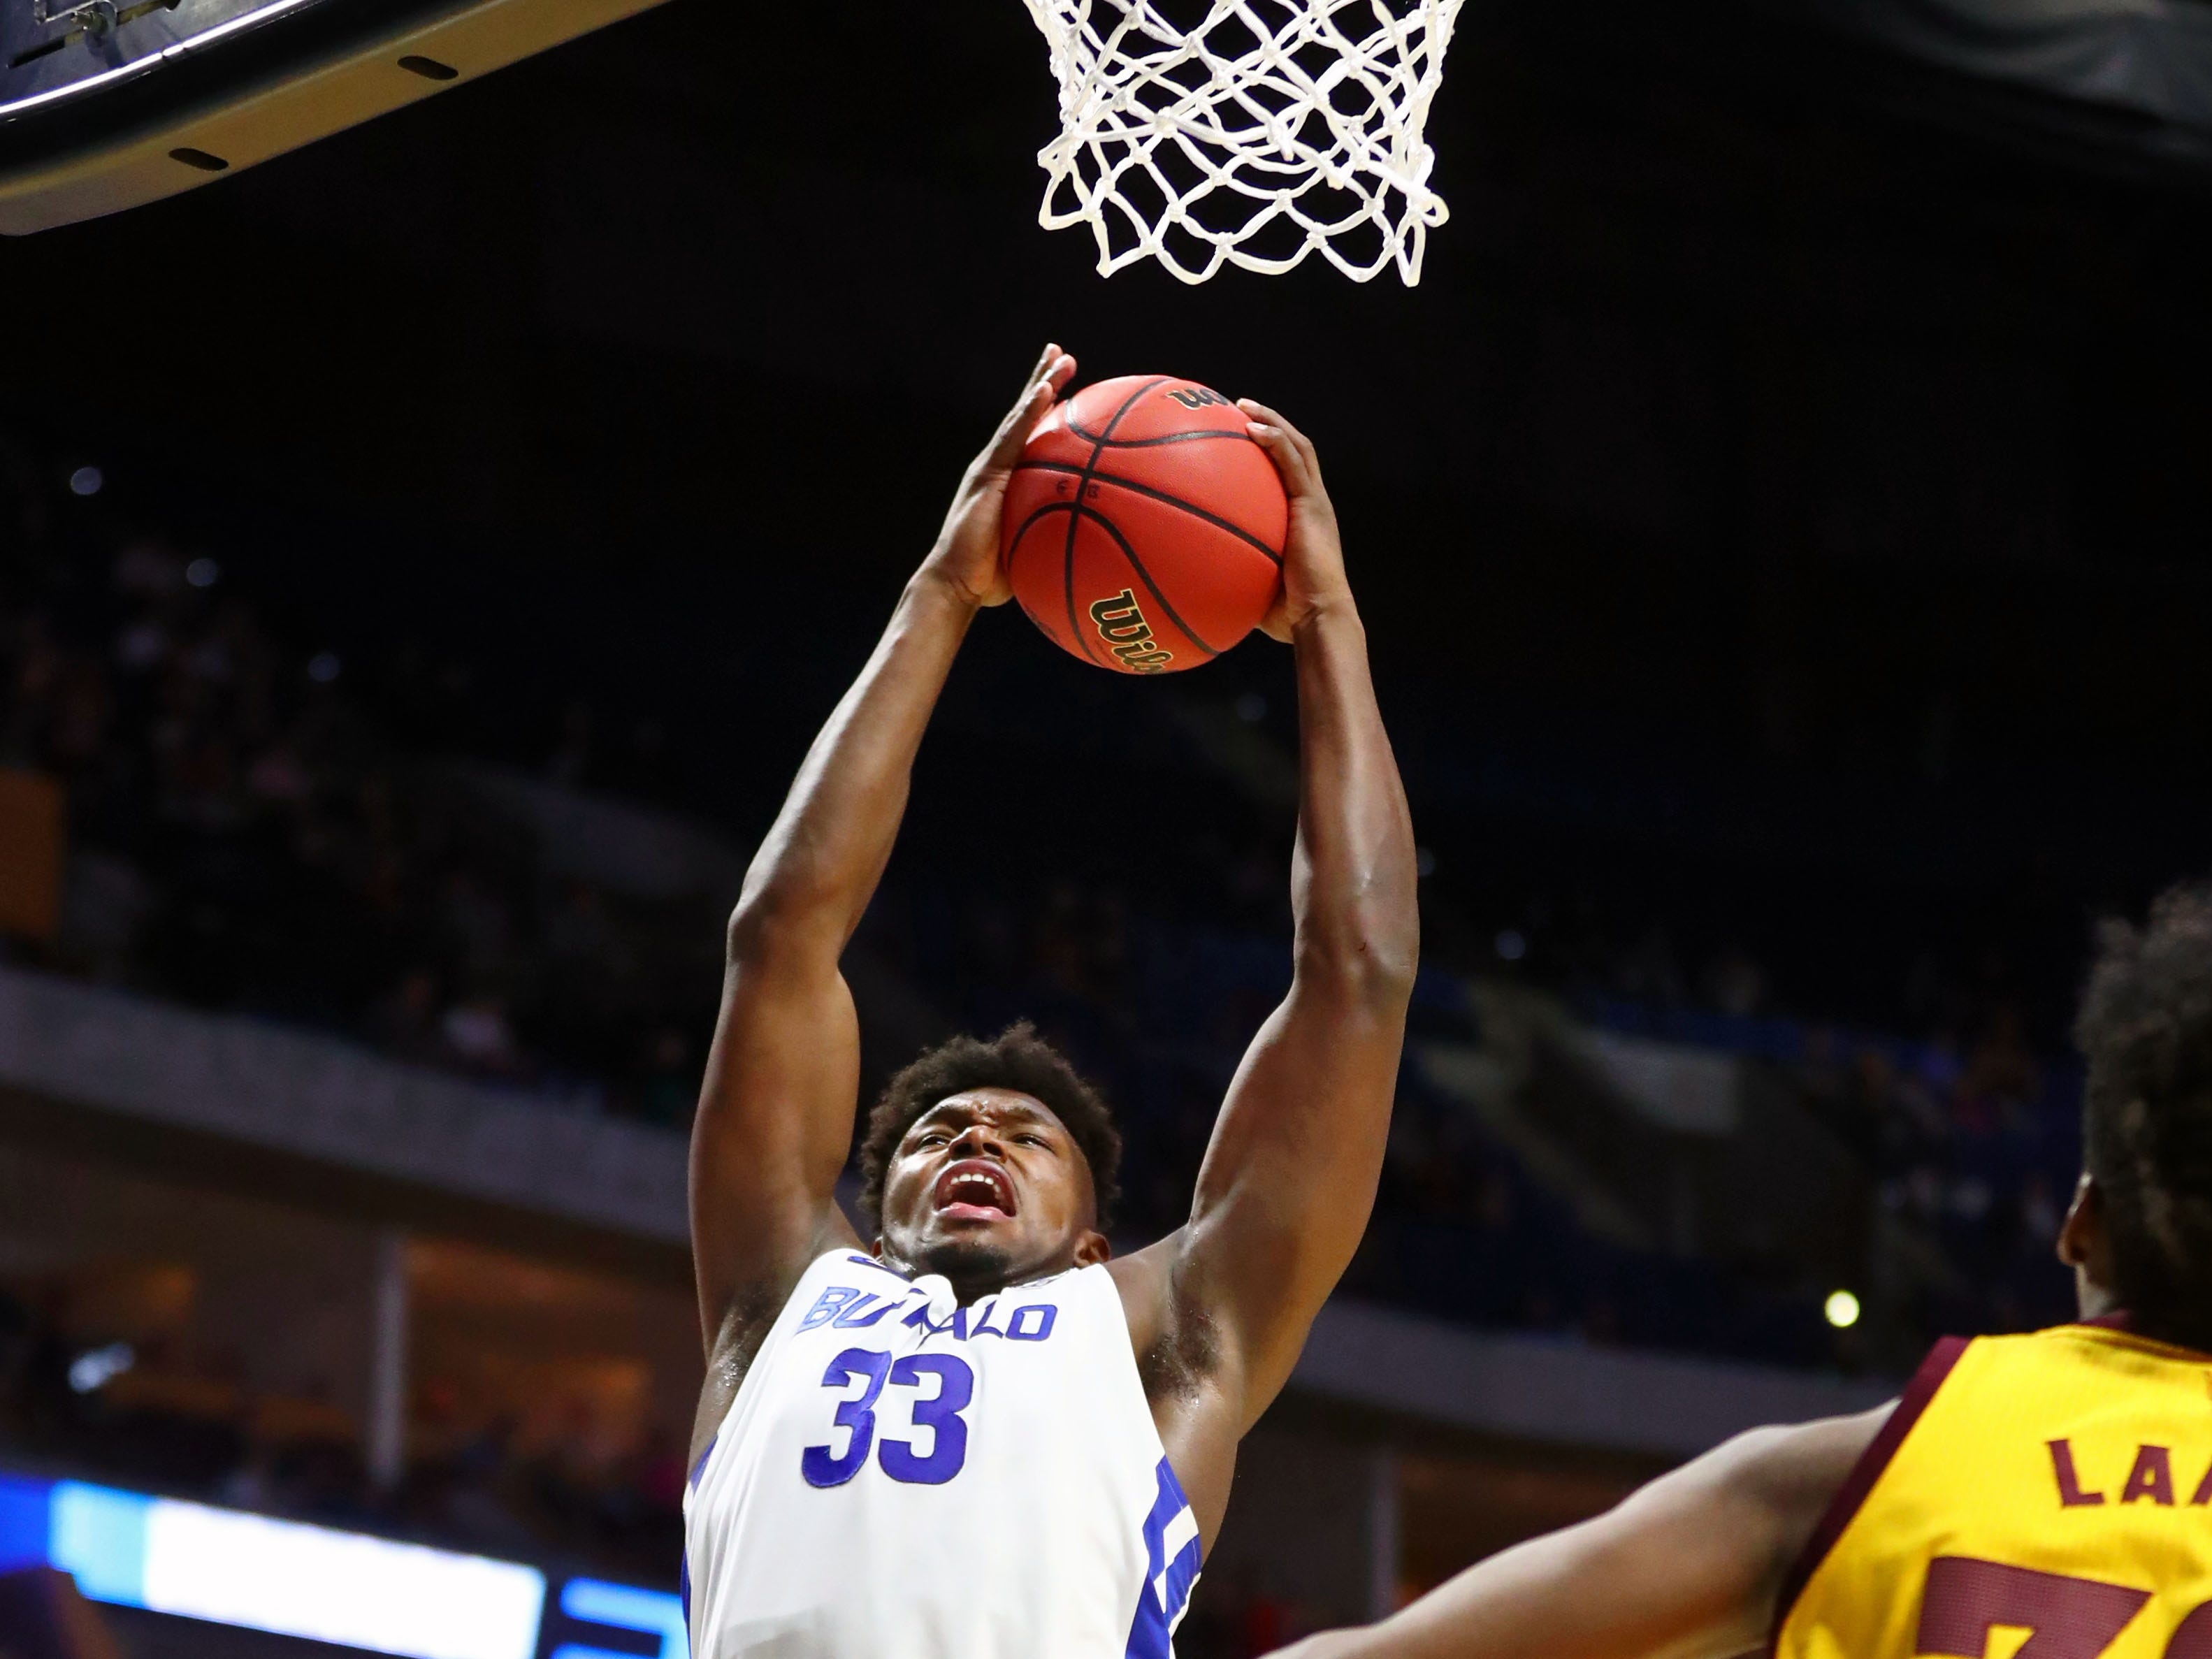 Mar 22, 2019; Tulsa, OK, USA; Buffalo Bulls forward Nick Perkins (33) grabs a rebound against the Arizona State Sun Devils during the first half in the first round of the 2019 NCAA Tournament at BOK Center. Mandatory Credit: Mark J. Rebilas-USA TODAY Sports